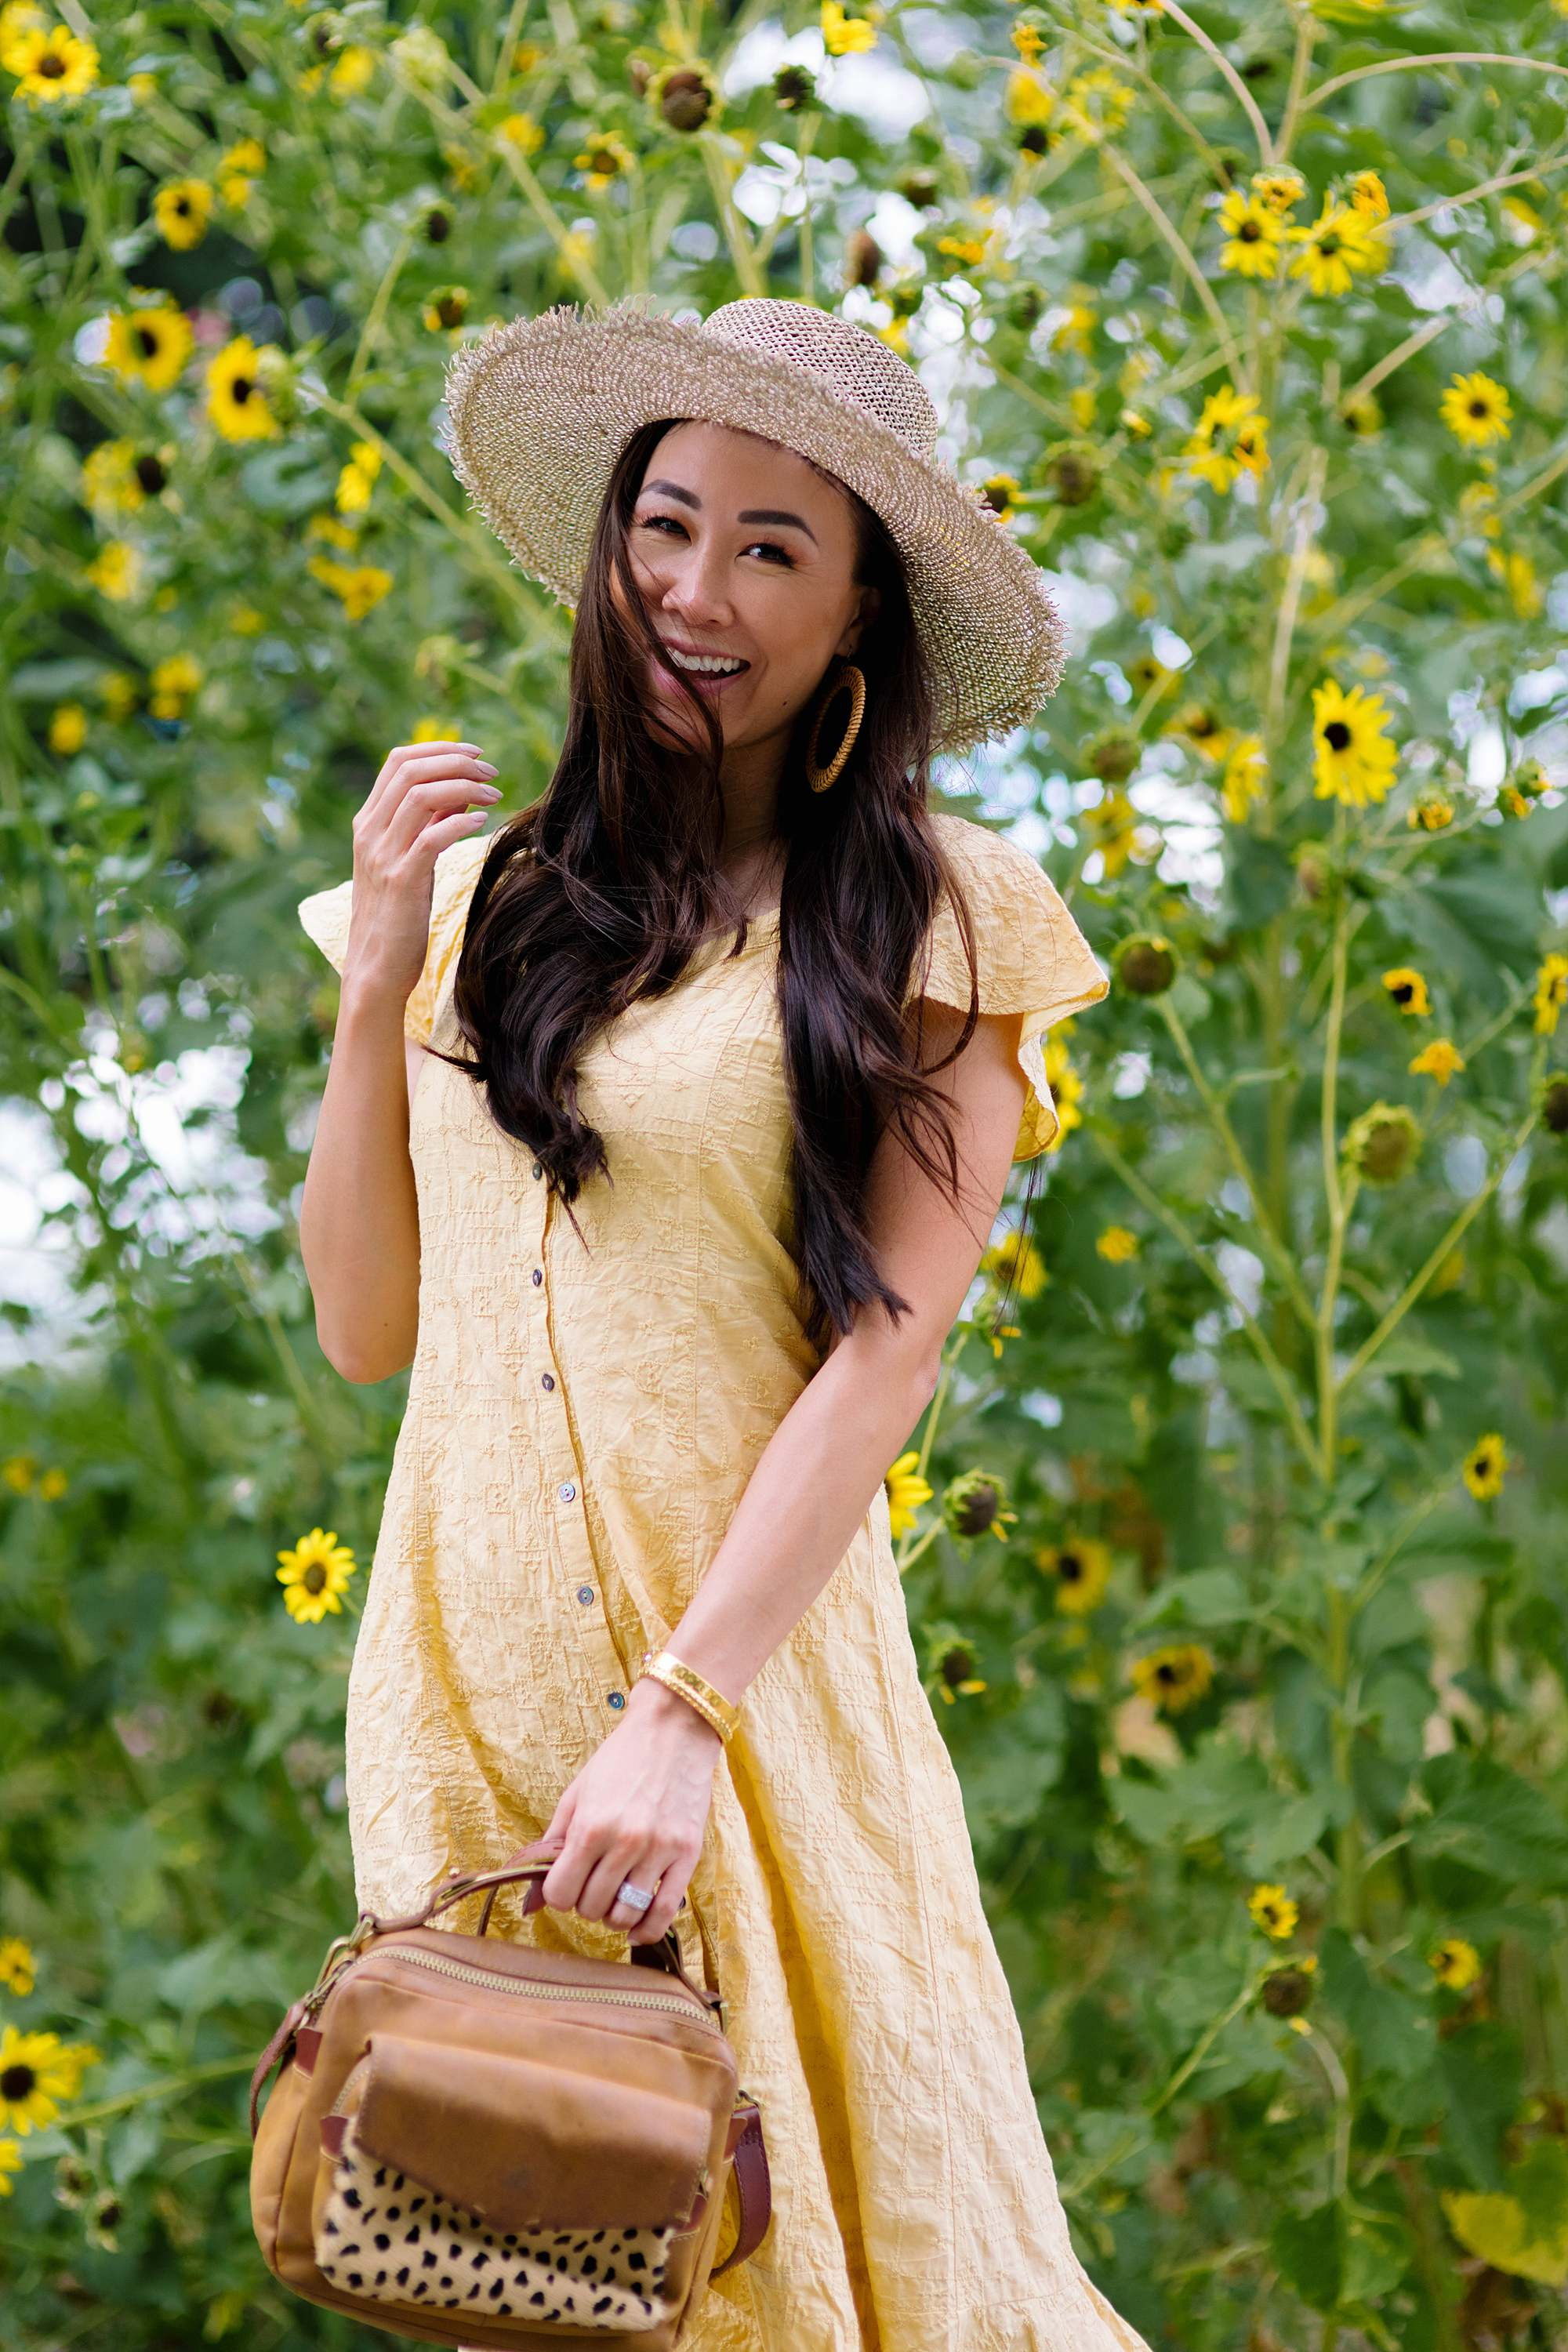 odd Molly Capri dress in yellow standing in front of sunflowers